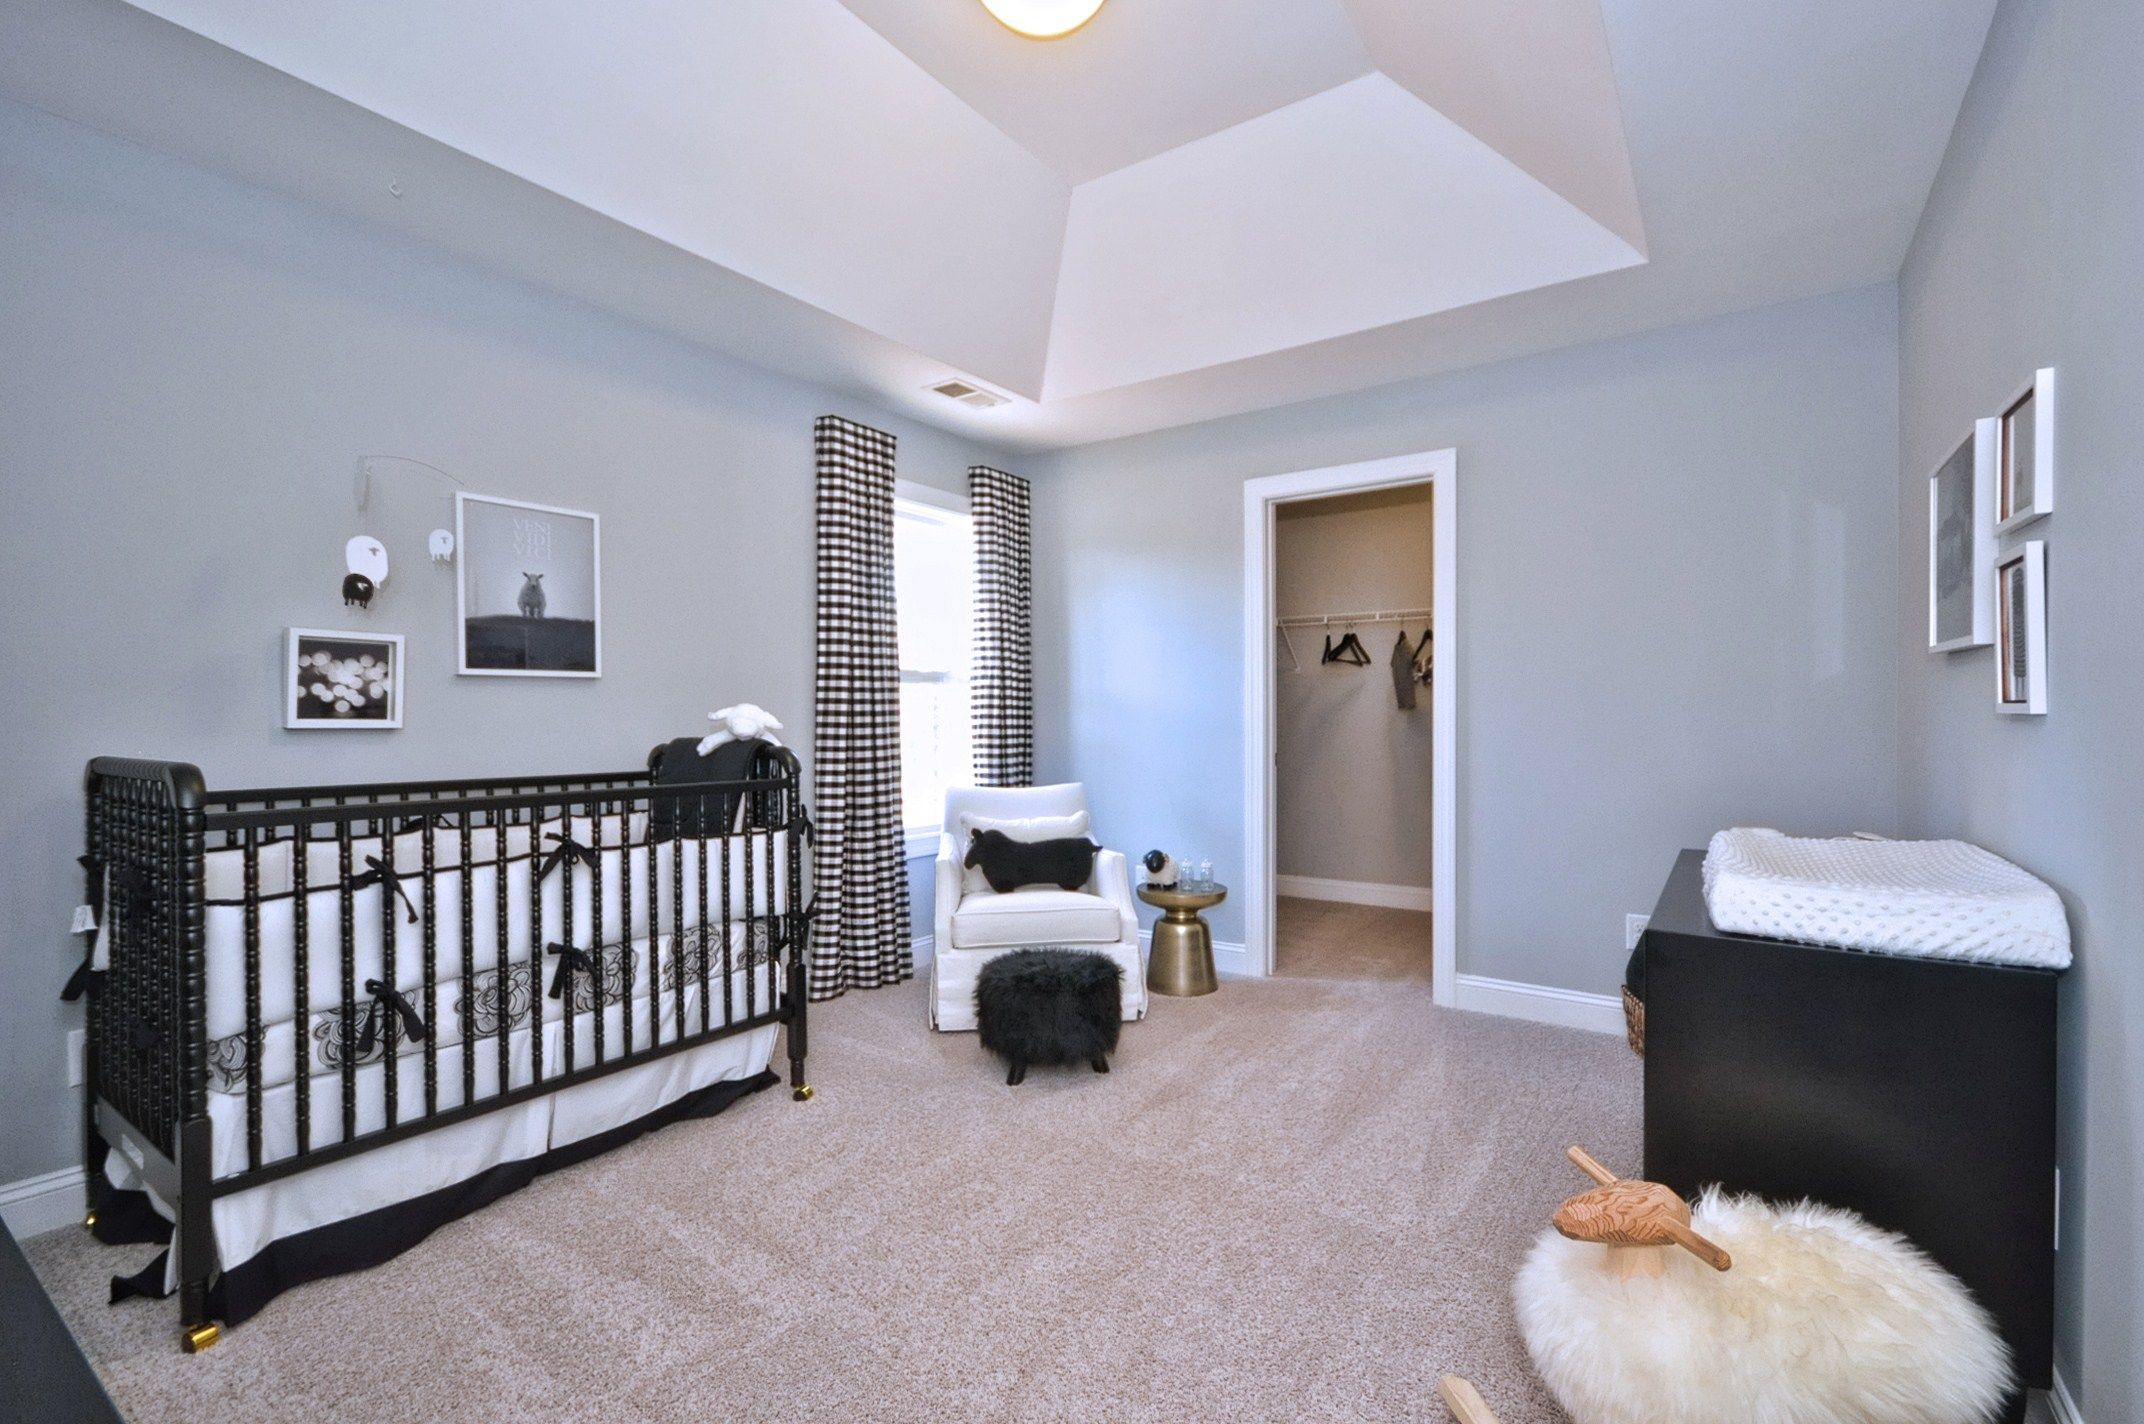 Wakefield model home secondary bedroom tullamore pinterest sherwin williams gray - Small bedroom spaces model ...